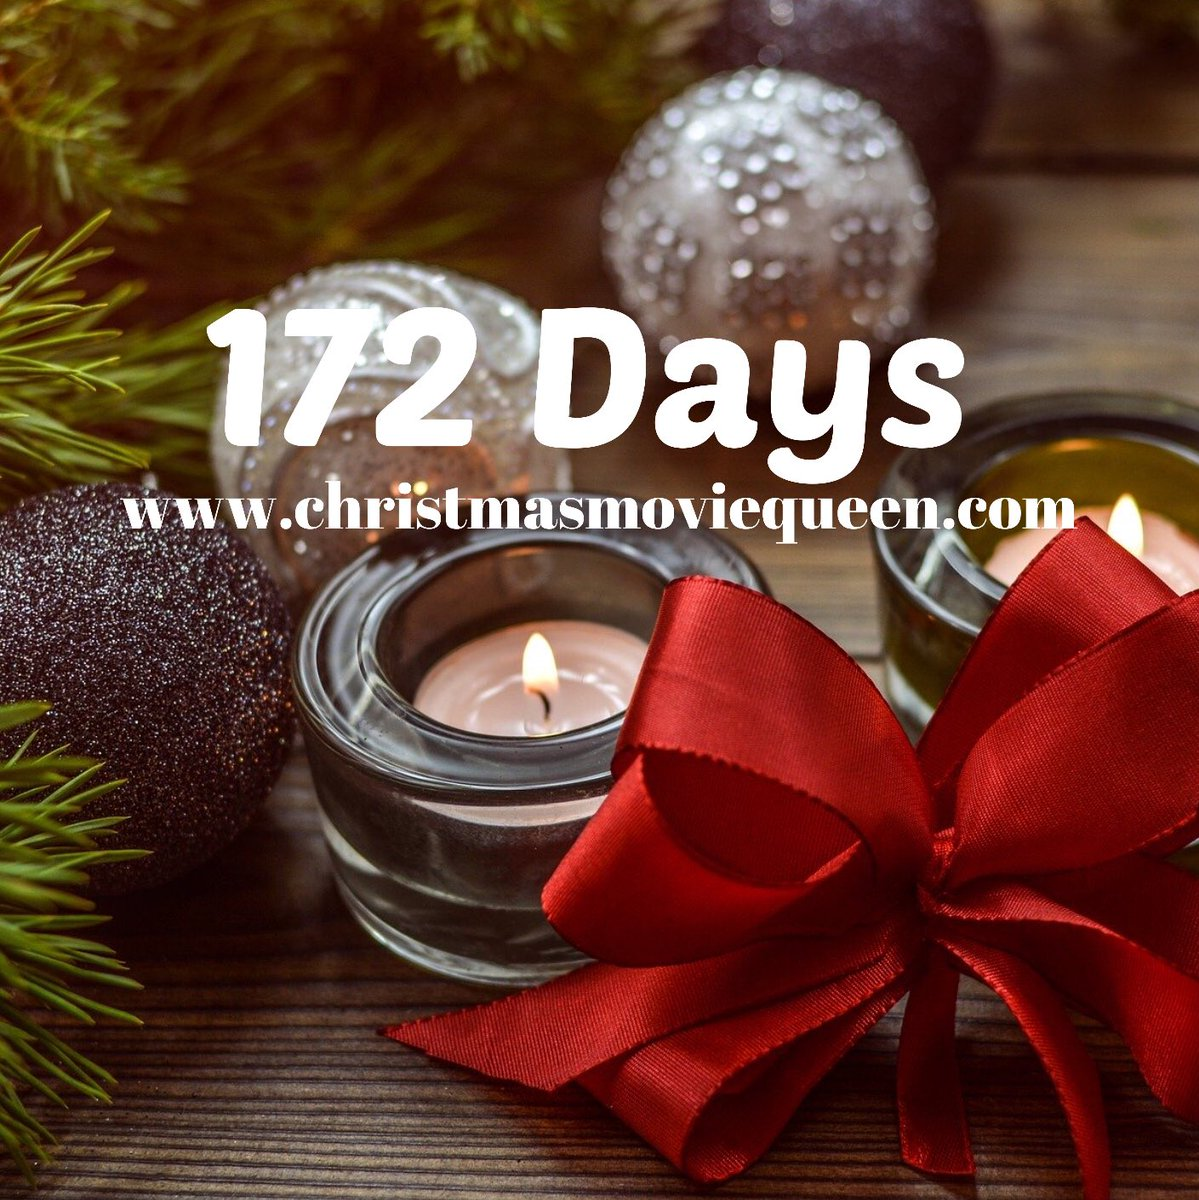 Good morning!  Only 172 to go! #countdown #christmas #winter #christmascountdown #christmasspirit #christmas2020 #holidays #christmasmagic #santa #santaclaus #believe #ChristmasMovies #MovieReviews